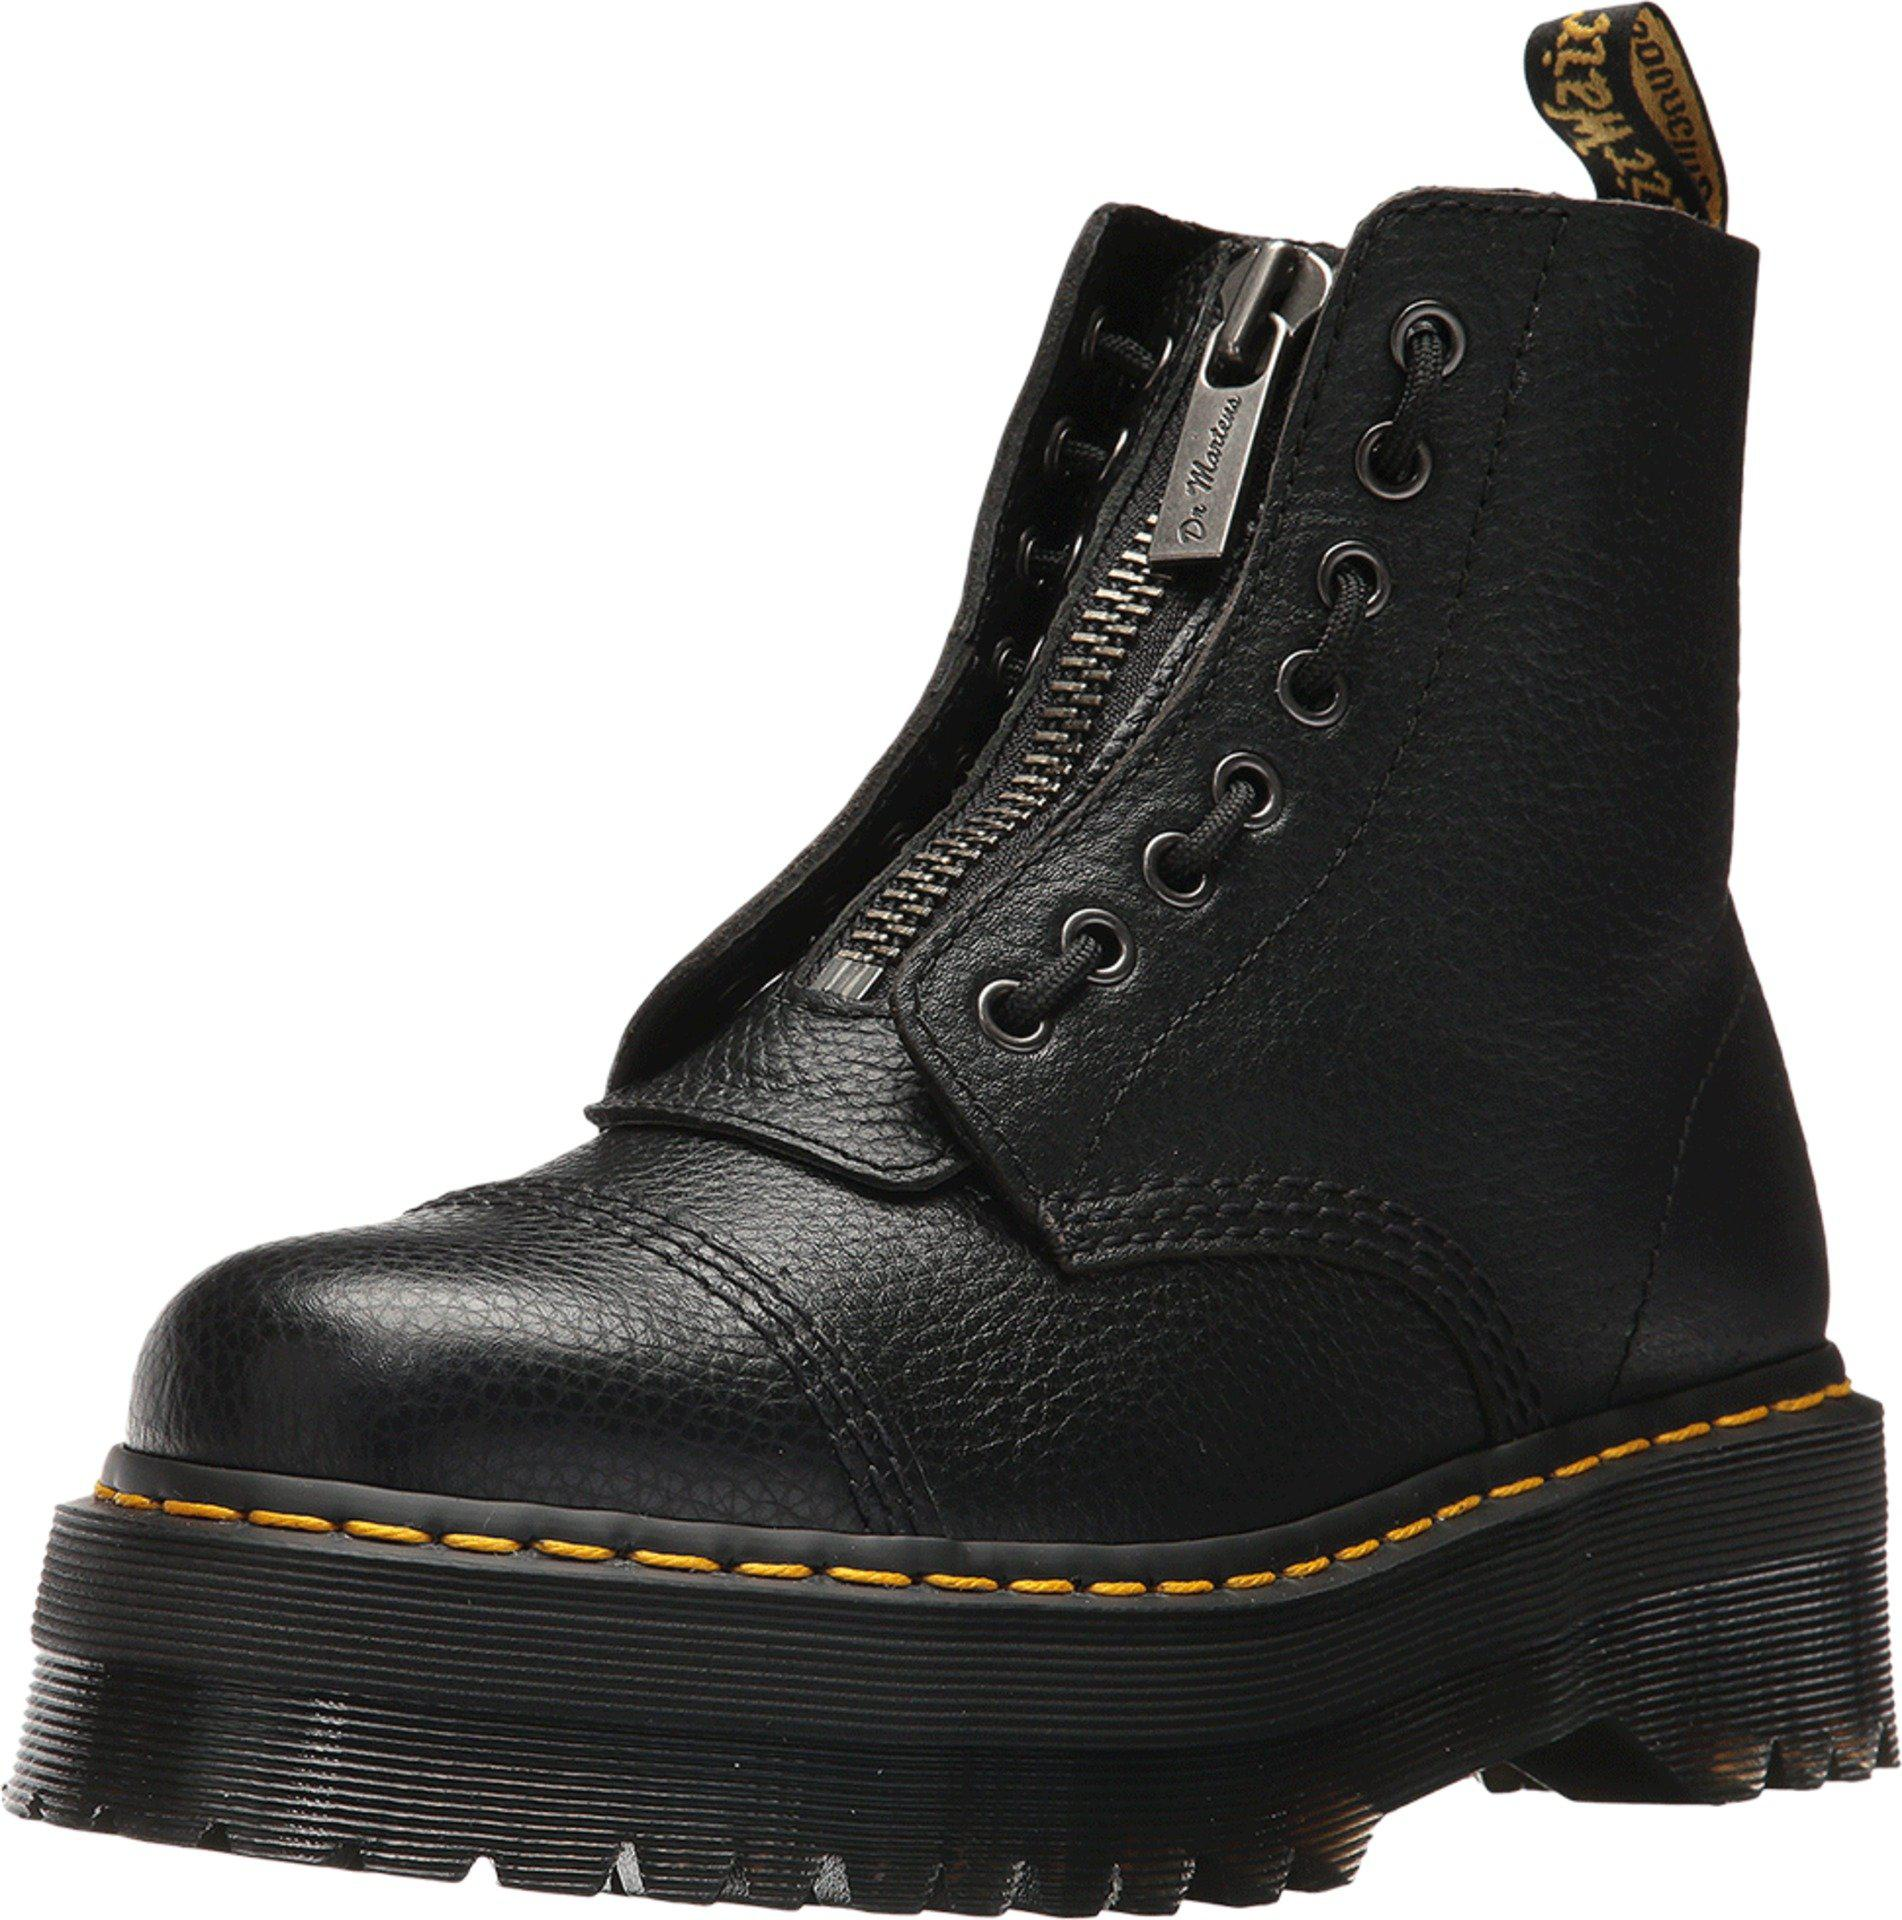 0cba876cd104 Lyst - Dr. Martens Sinclair Jungle Boot in Black